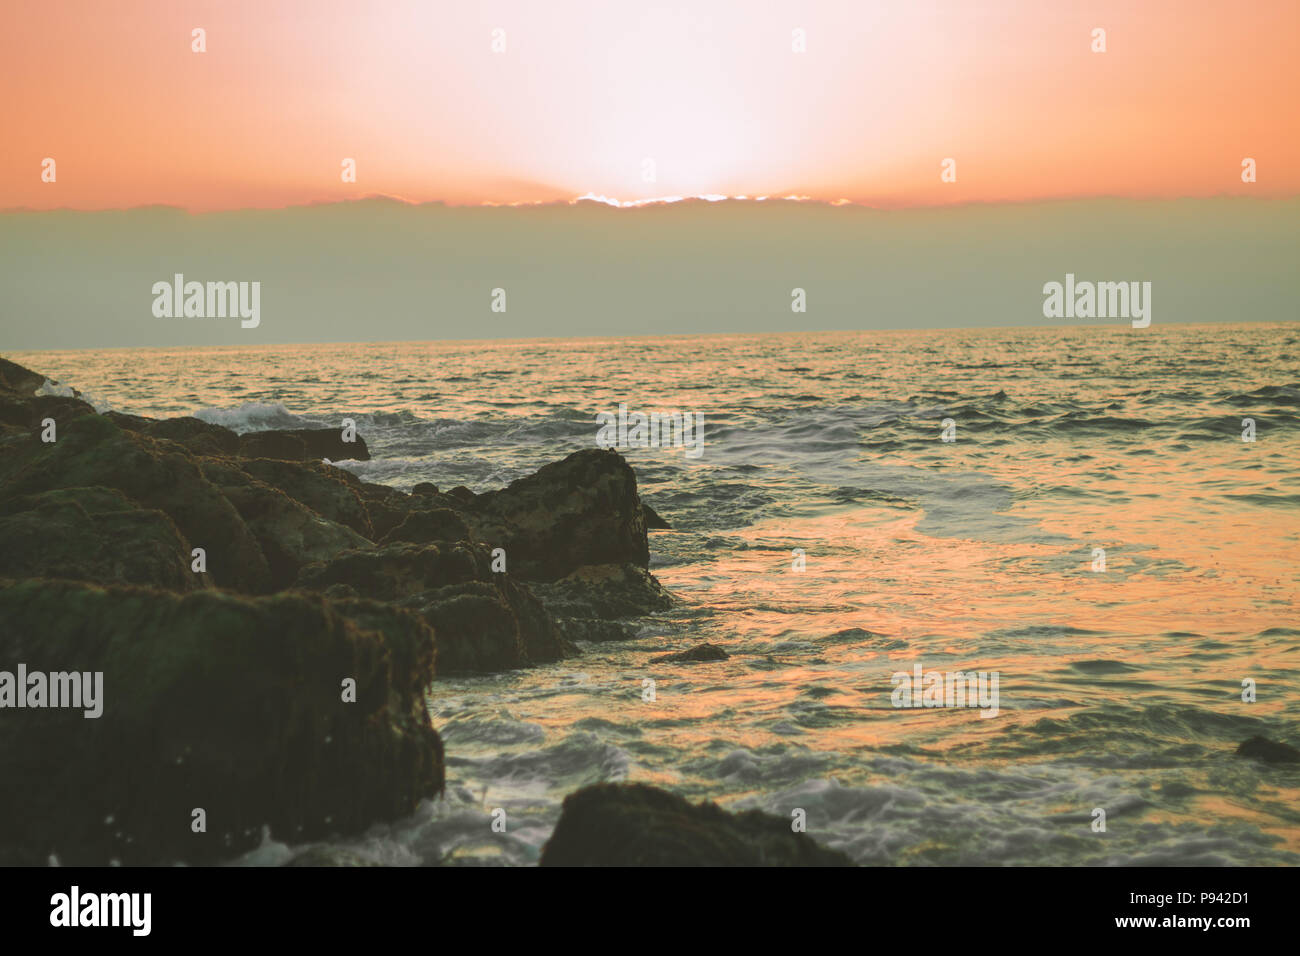 Sunset and the horizon - Stock Image